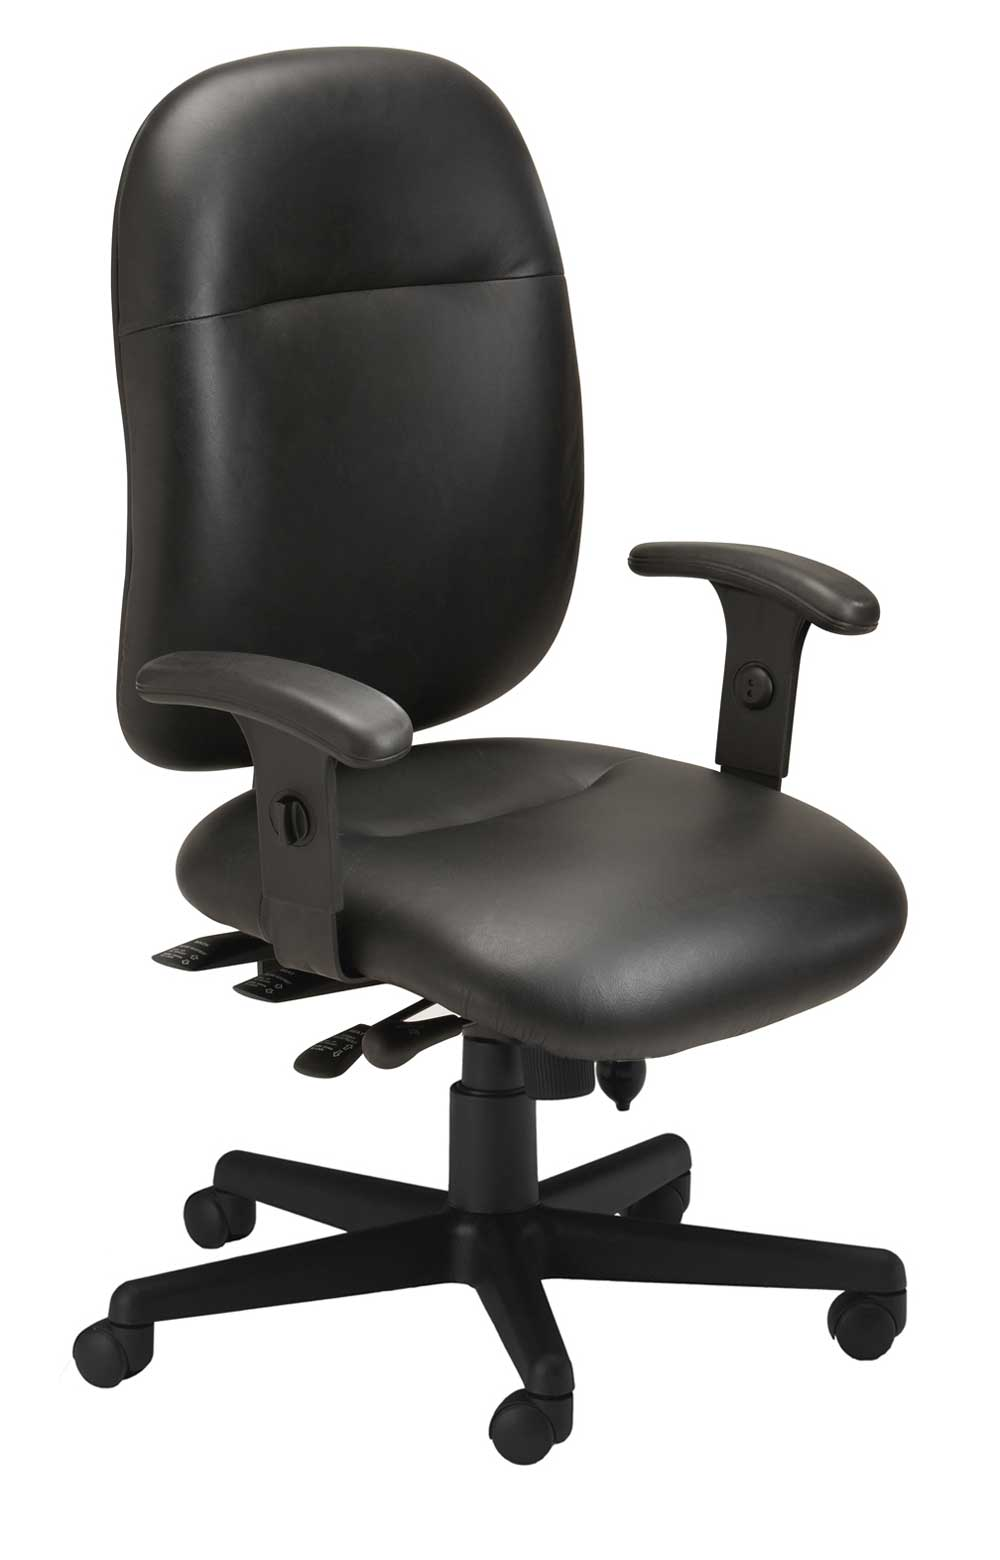 best desk chairs for back pain frontgate chaise lounge comfortable to enjoy work